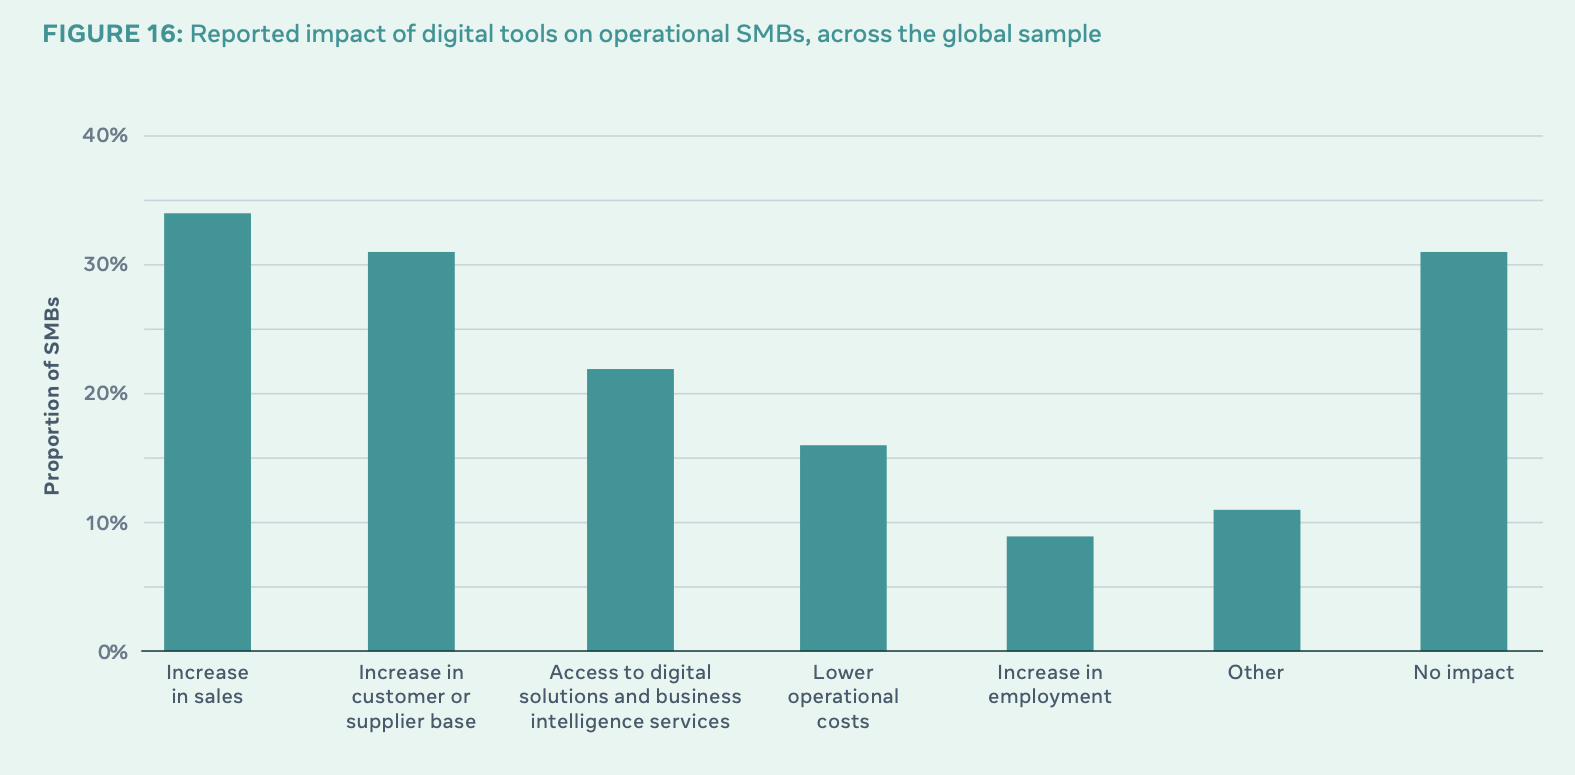 Facebook Reports Increase in Use of Digital Tools Among SMBs